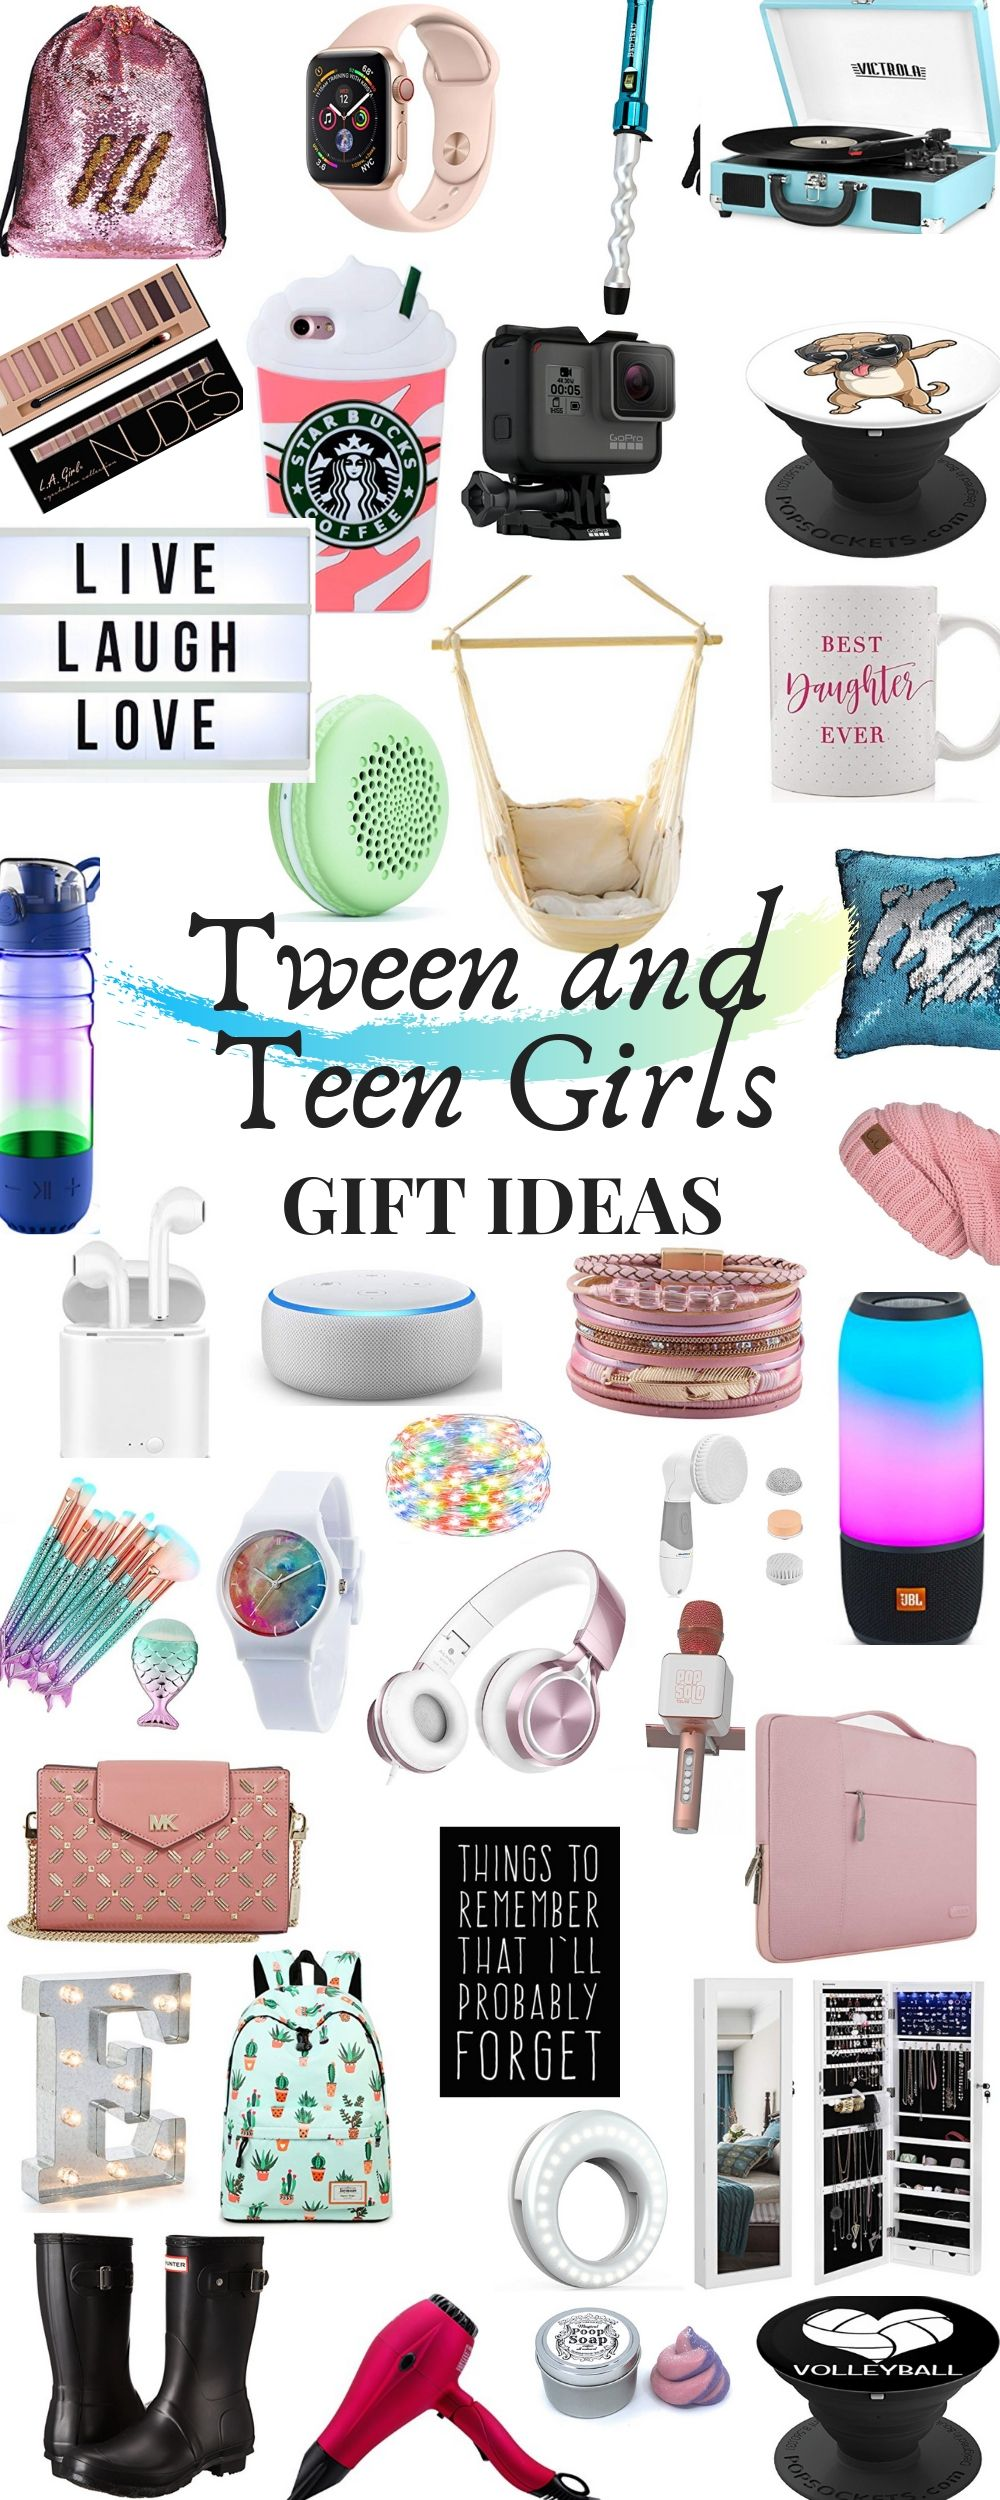 Tween and Teenage Girl Gift Ideas. Looking for a great gift idea for your tricky teenager? Here are some fun gifts your girl will love. Whether it be electronic gifts, teenage girl room decor ideas, or something fun for school, we've got you covered! #teengirl #giftideas #giftsforteens